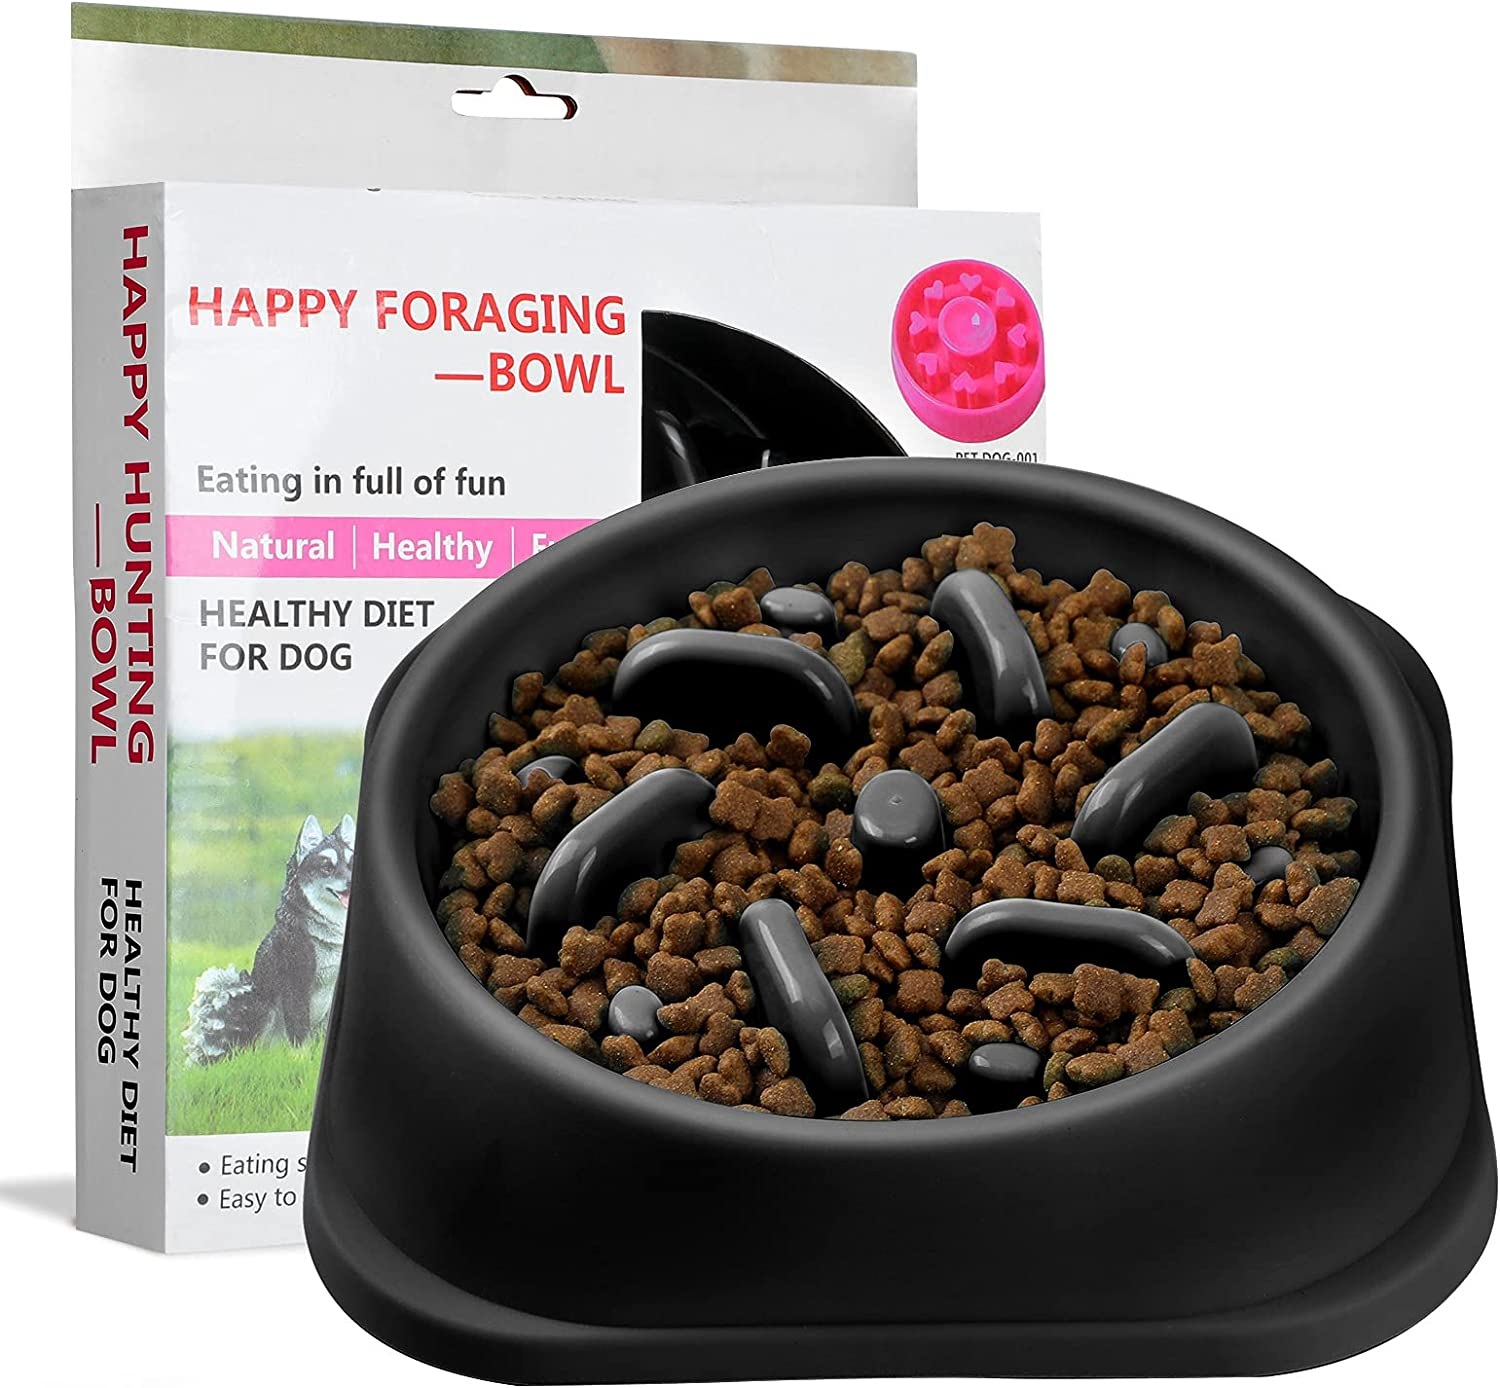 FIETING Slow Feeder Dog Bowls, Fun Feeder Sol Bowl, Maze Interactive Dog Puzzle Non Skid Stop Dog Food Bowls. Eco-Friendly Non Toxic Healthy Design Dog Bowl for Large Medium Small Dogs. (Black)